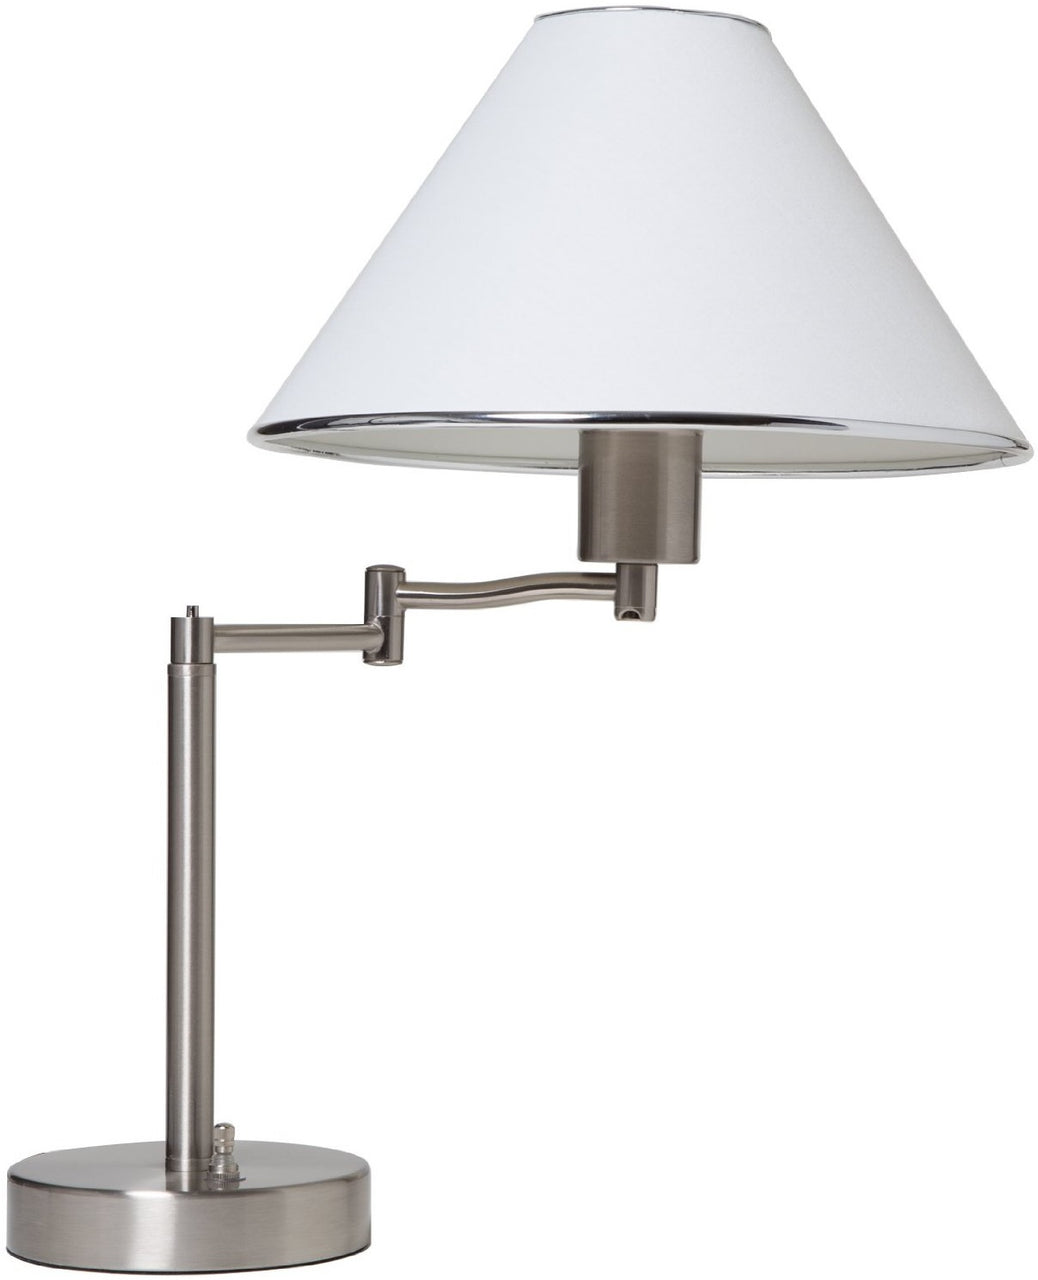 Boston Harbor TL-TB-8008-3L Swing Arm Adjustable Table Lamp, Satin Nickel